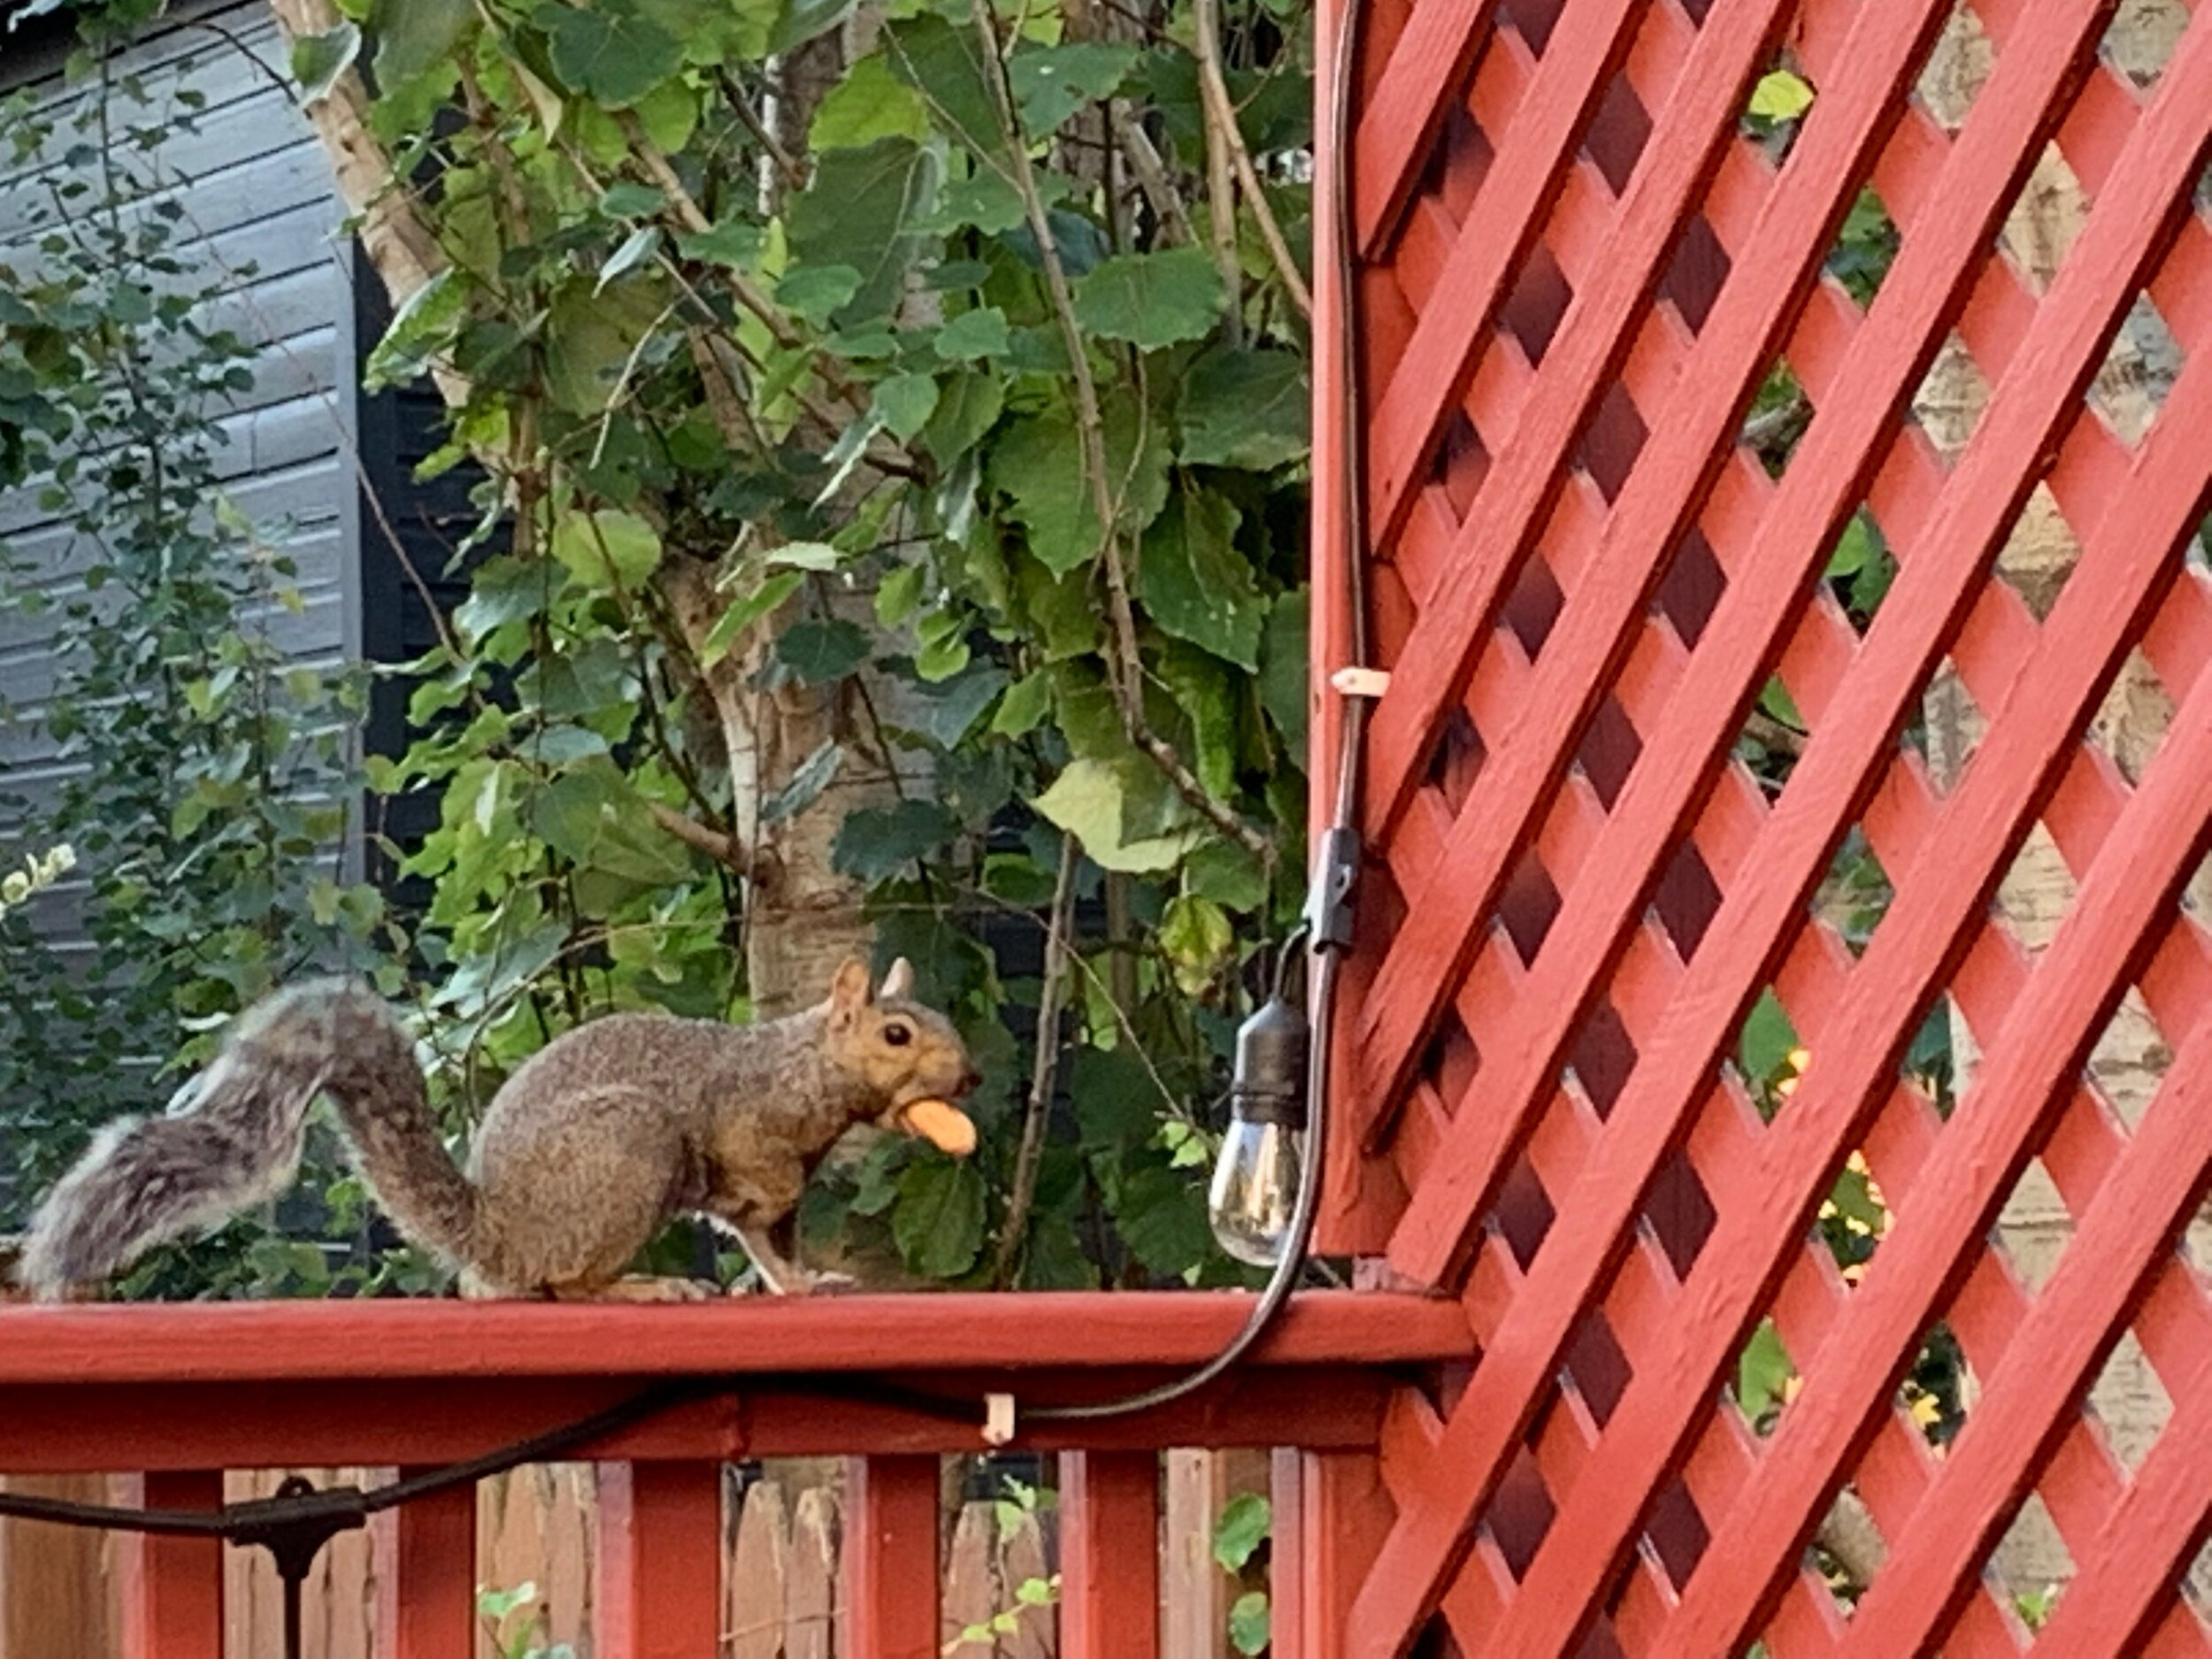 This squirrel and I have been going at it for weeks. My husband is starting to get concerned. 🐿 better stay away from my 🍅 plants because they're on their last days! 😭  #30daynaturechallenge